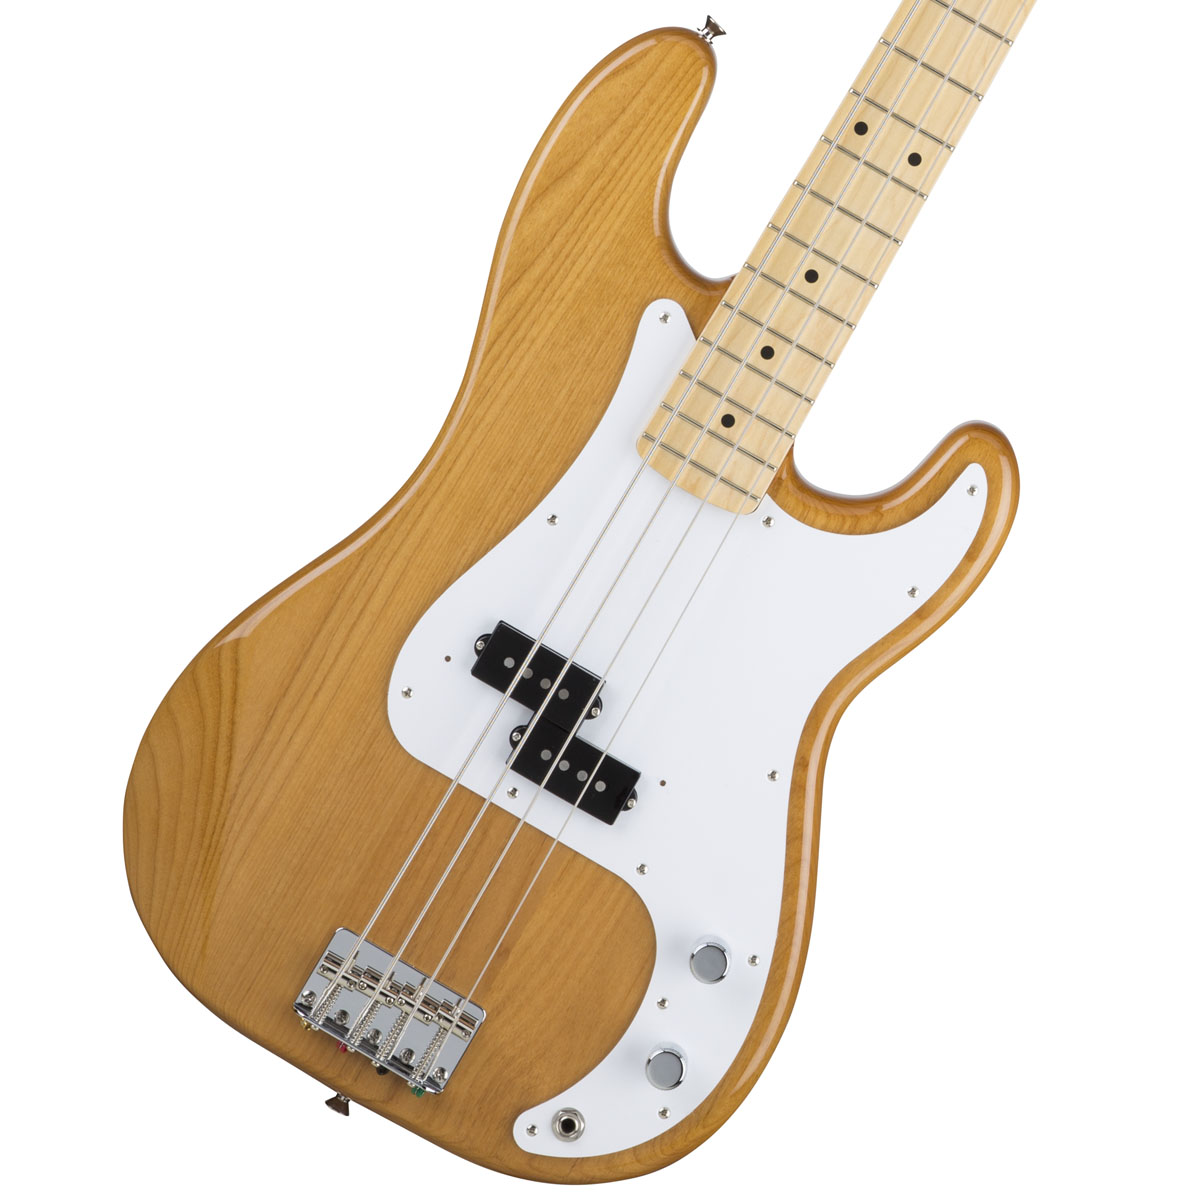 Fender / Made in Japan Hybrid 50s Precision Bass Vintage Natural【御茶ノ水本店】